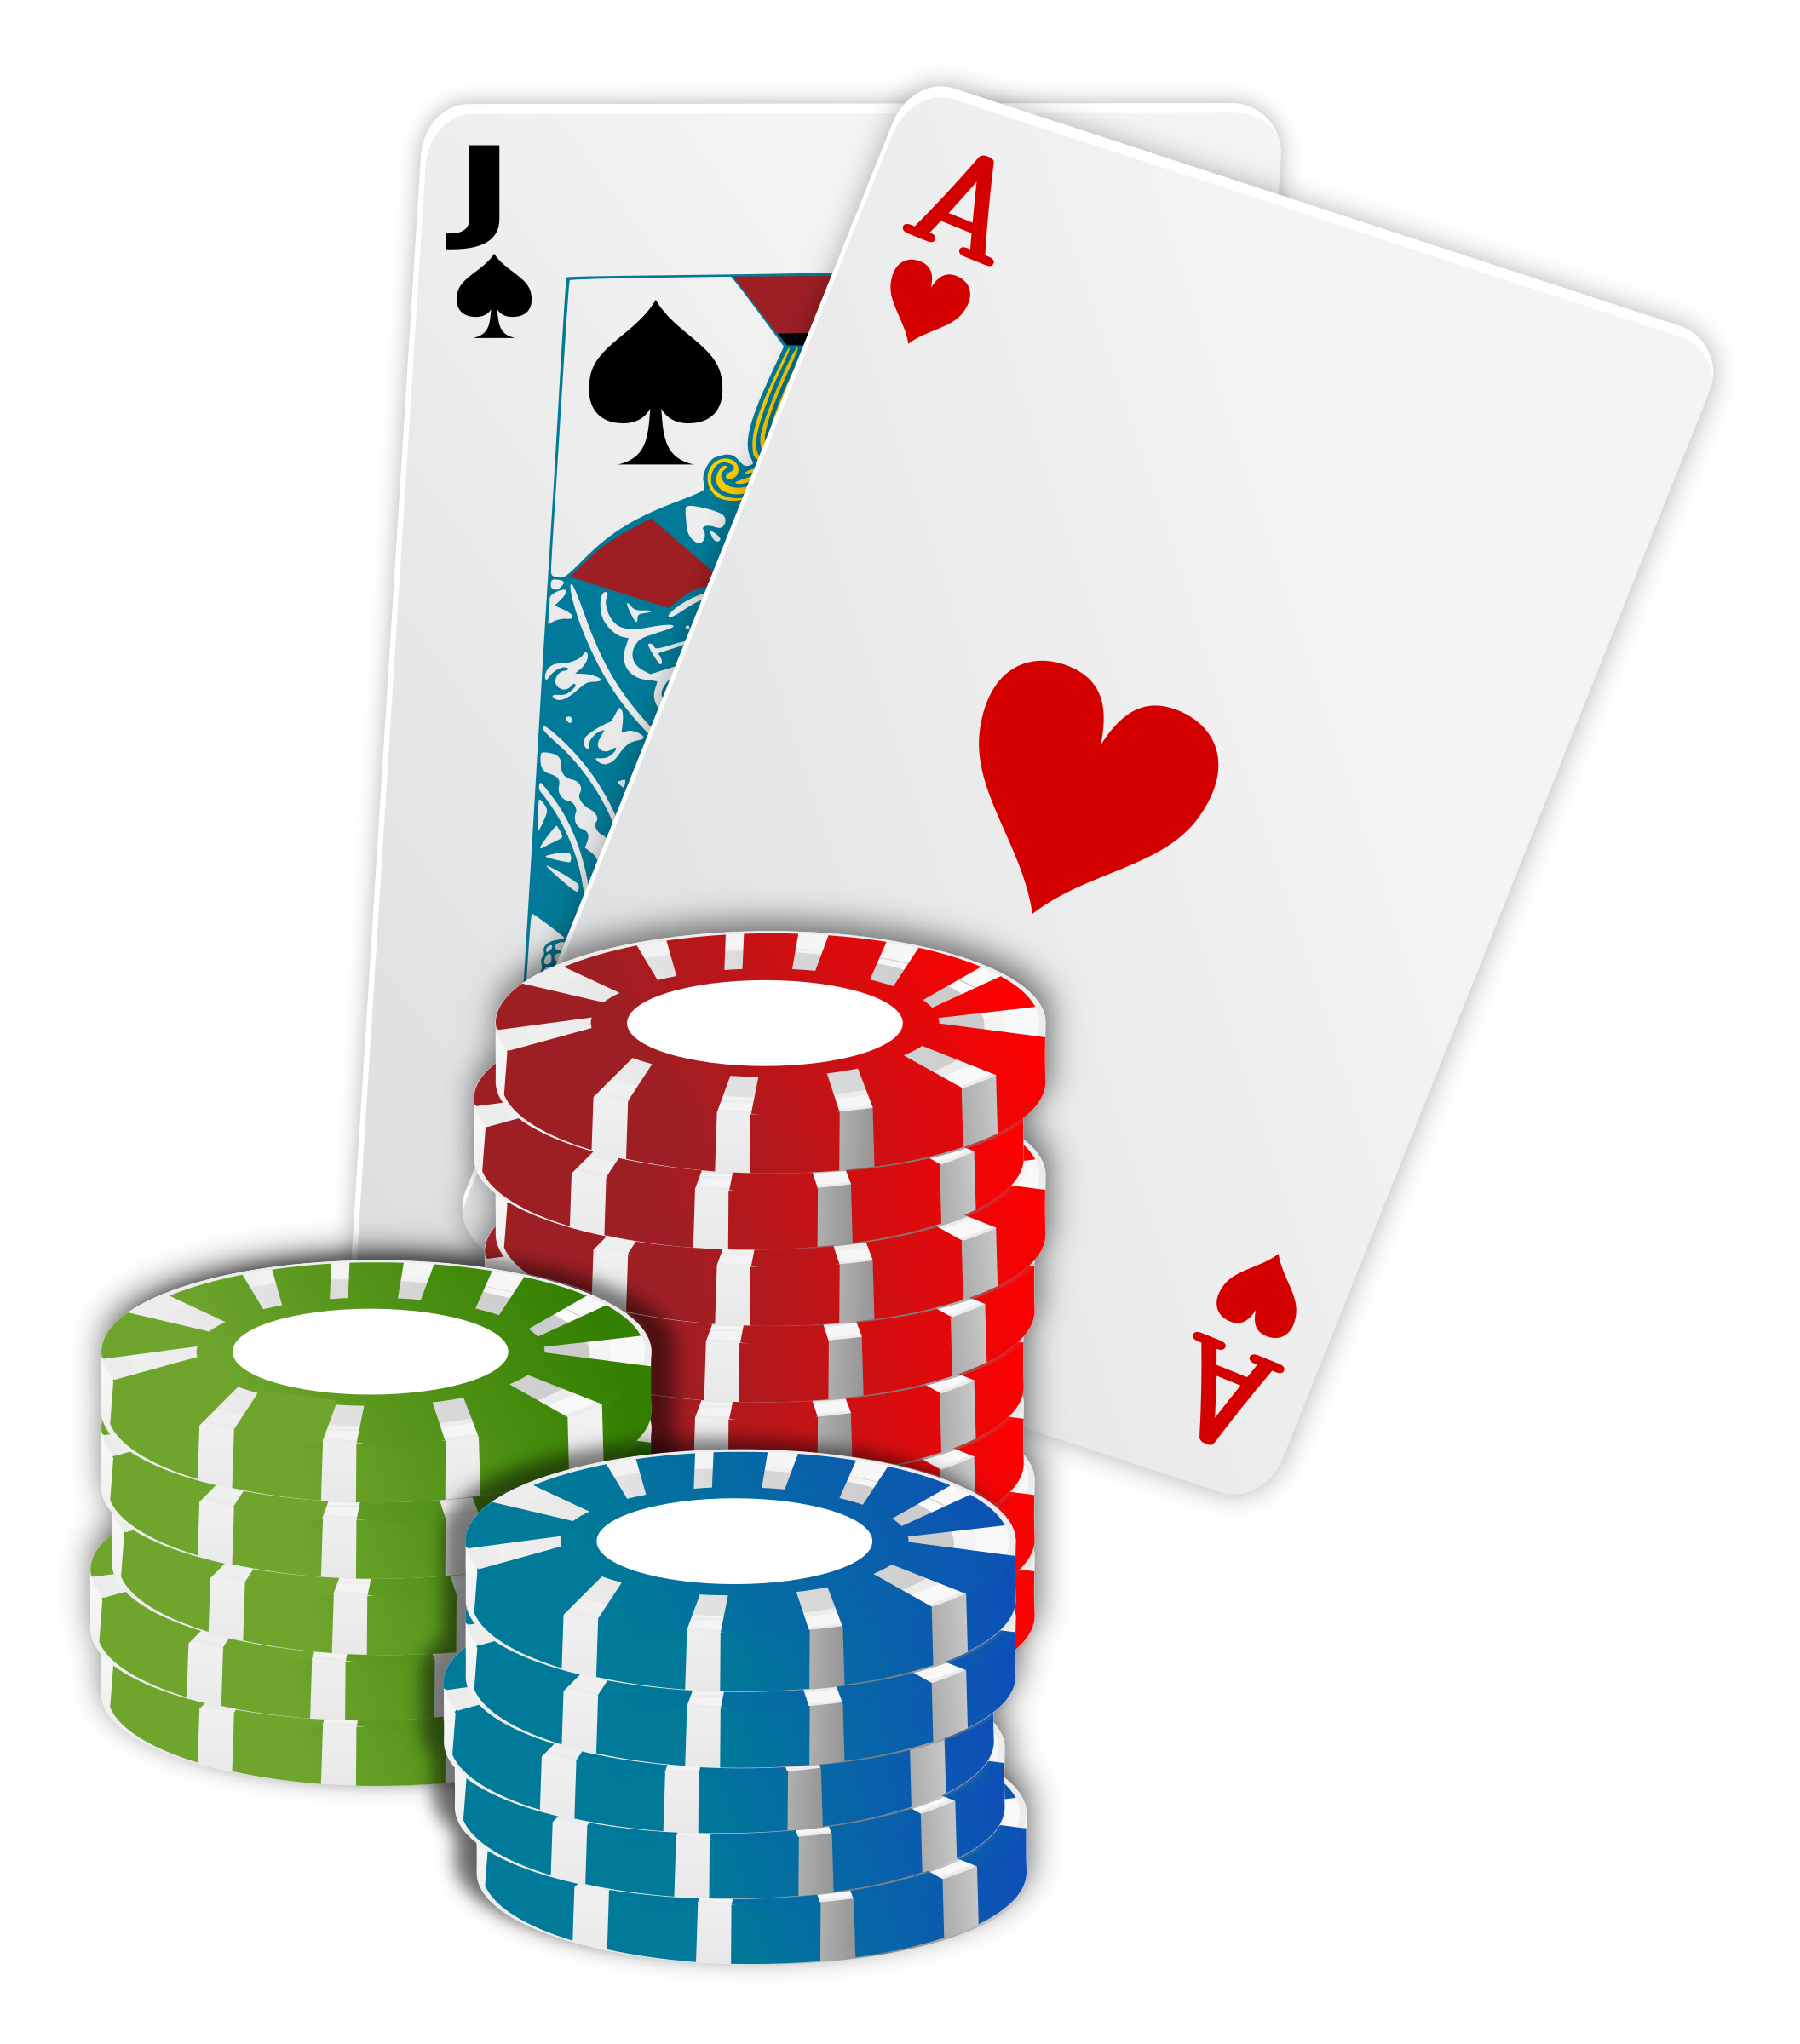 Game cards cliparts free. Games clipart clip art